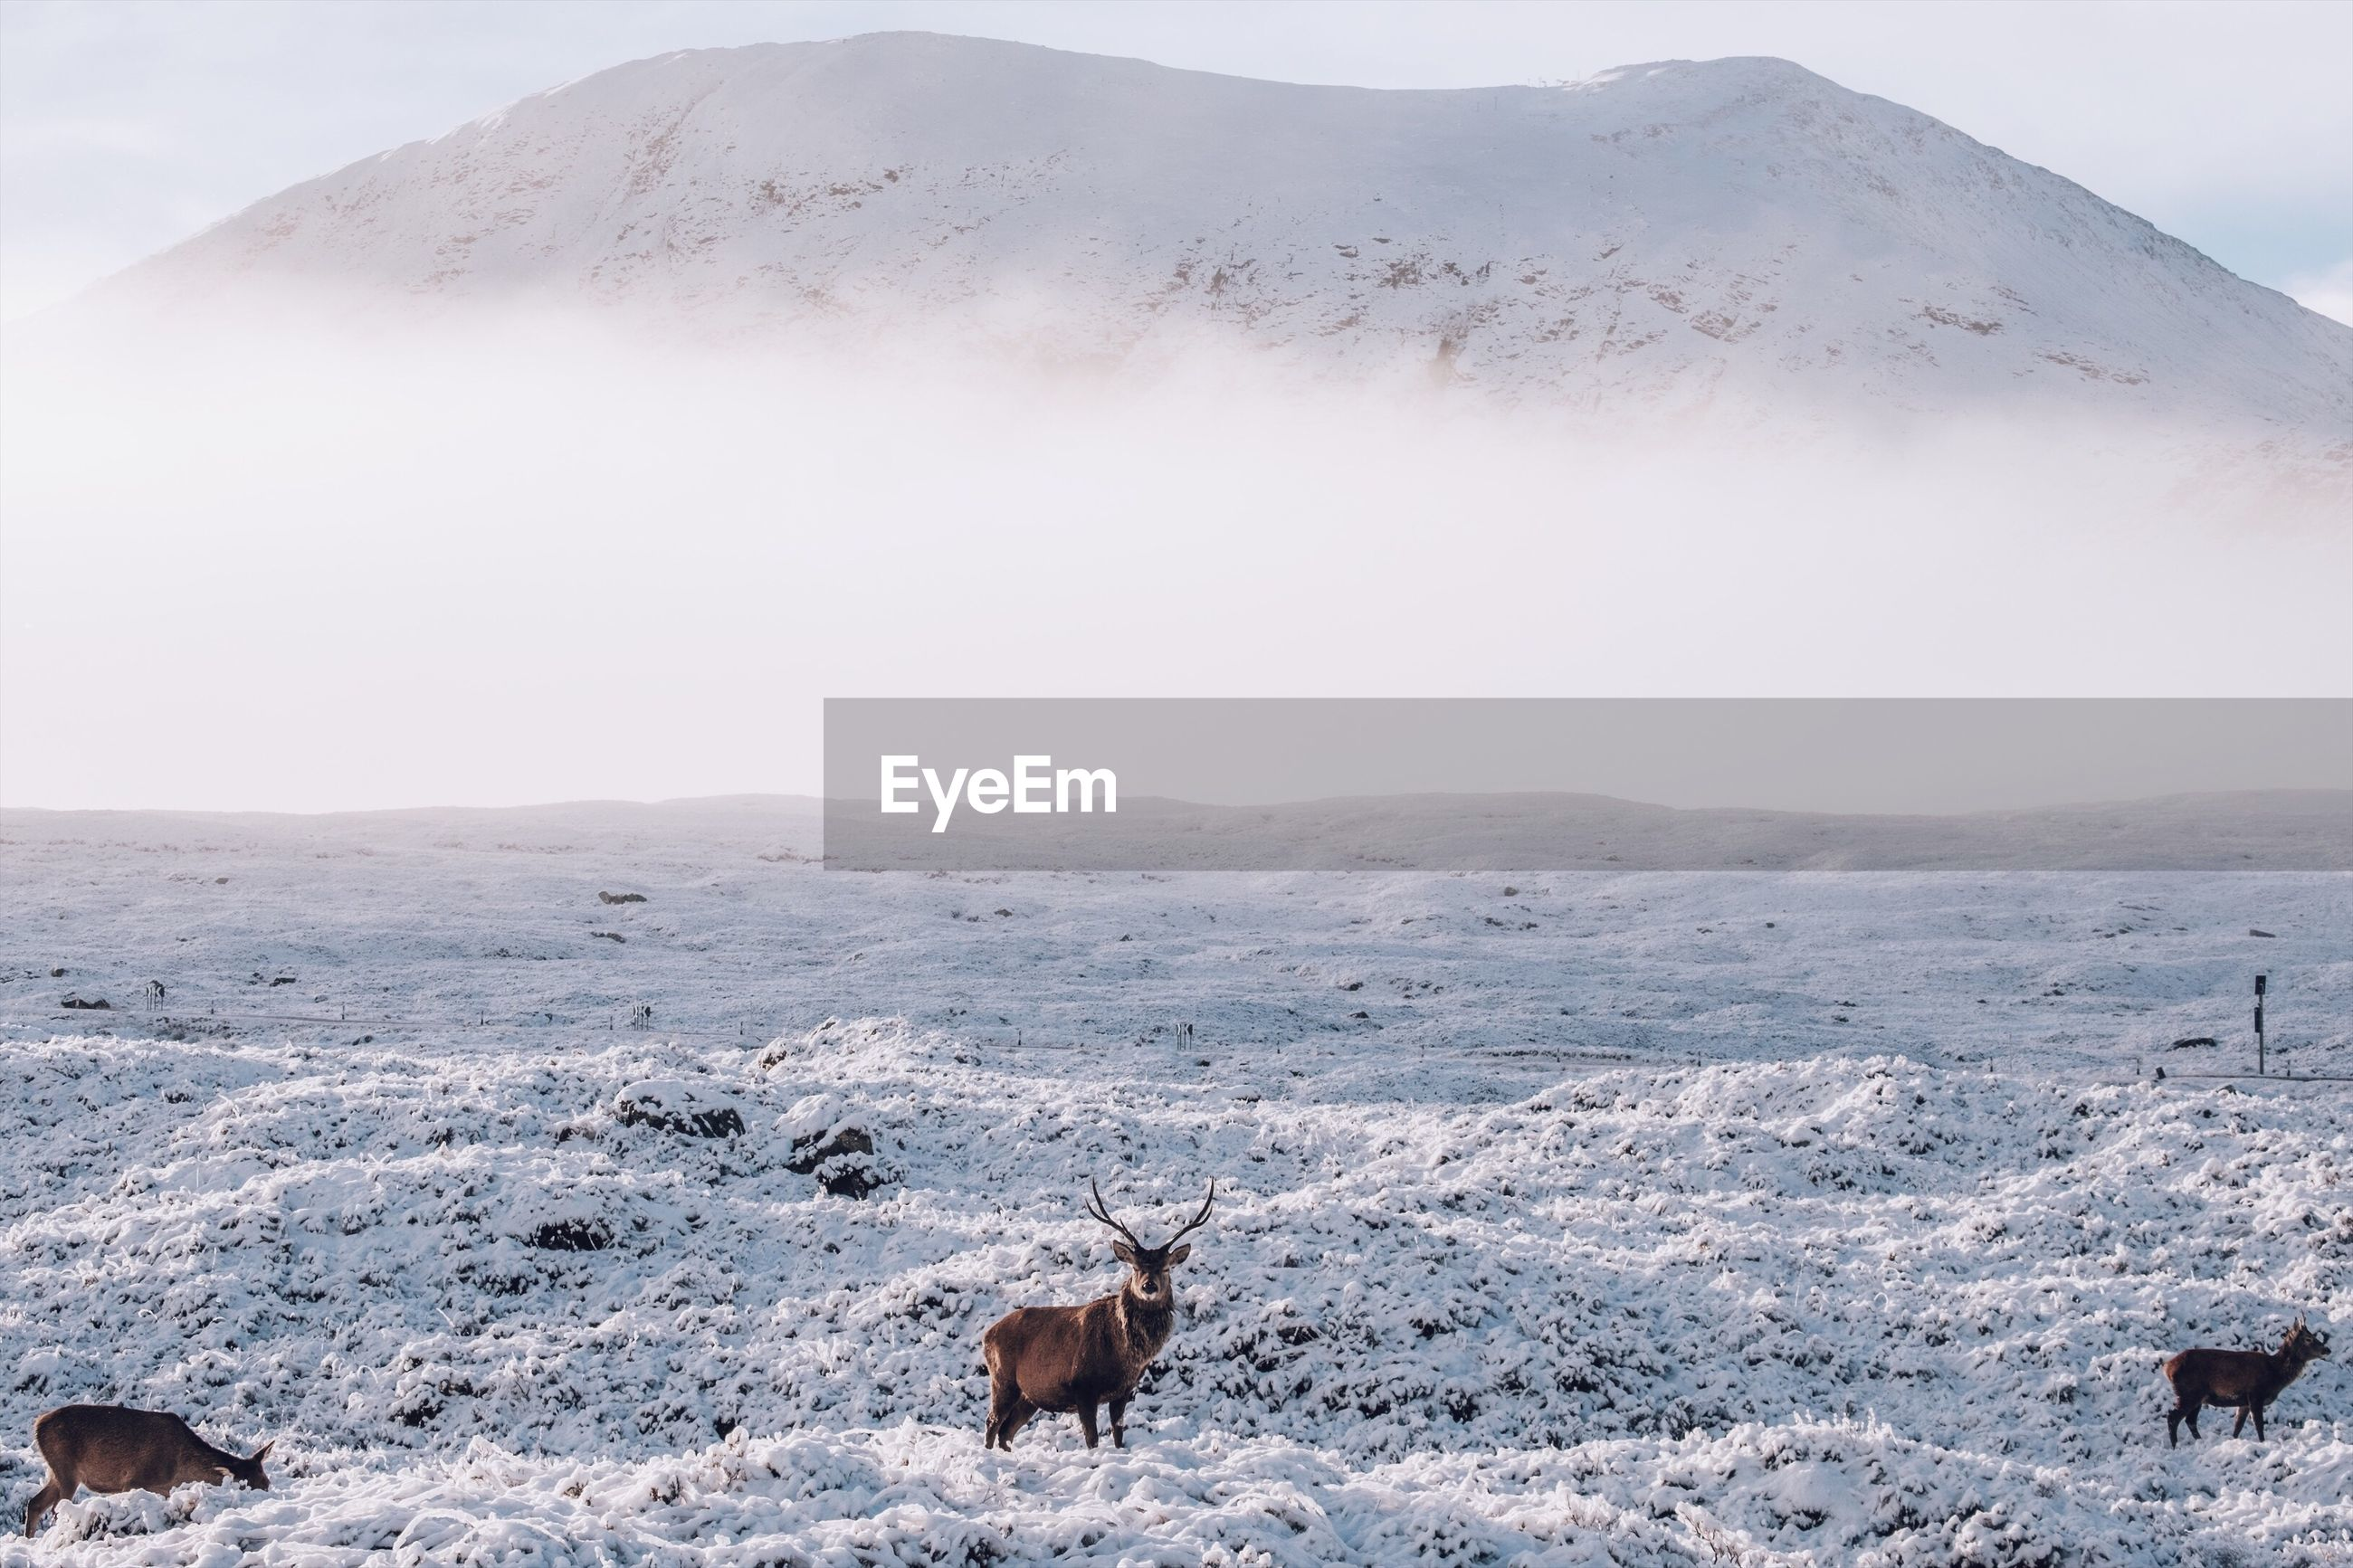 Deer on snow covered landscape against mountain